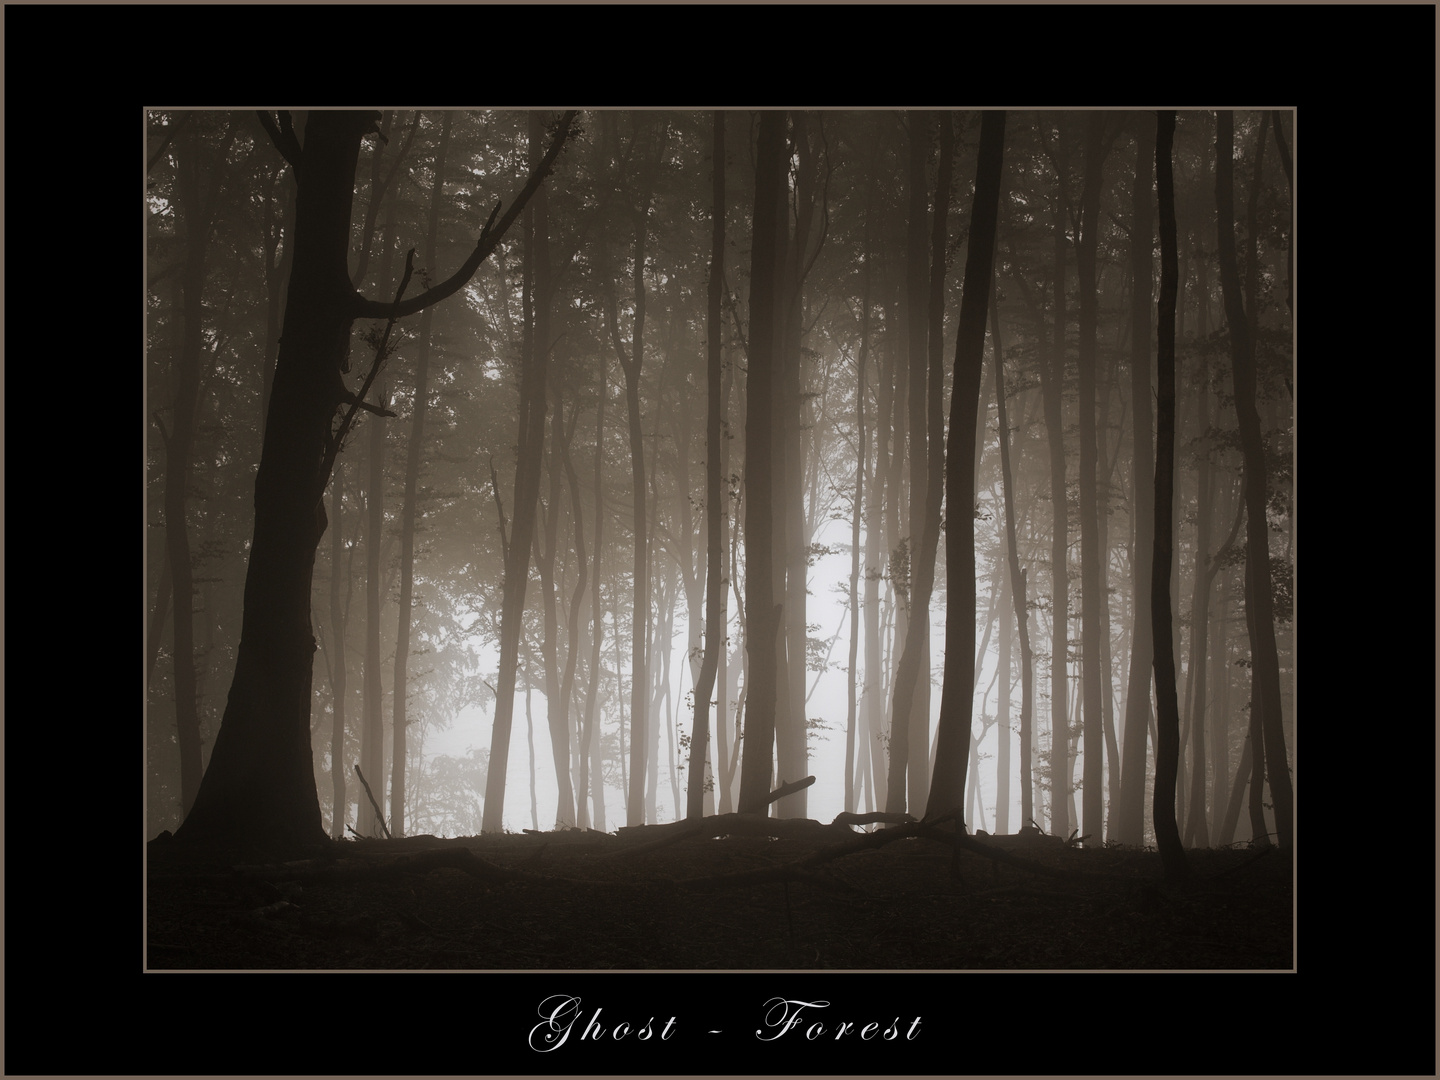 Ghost - Forest